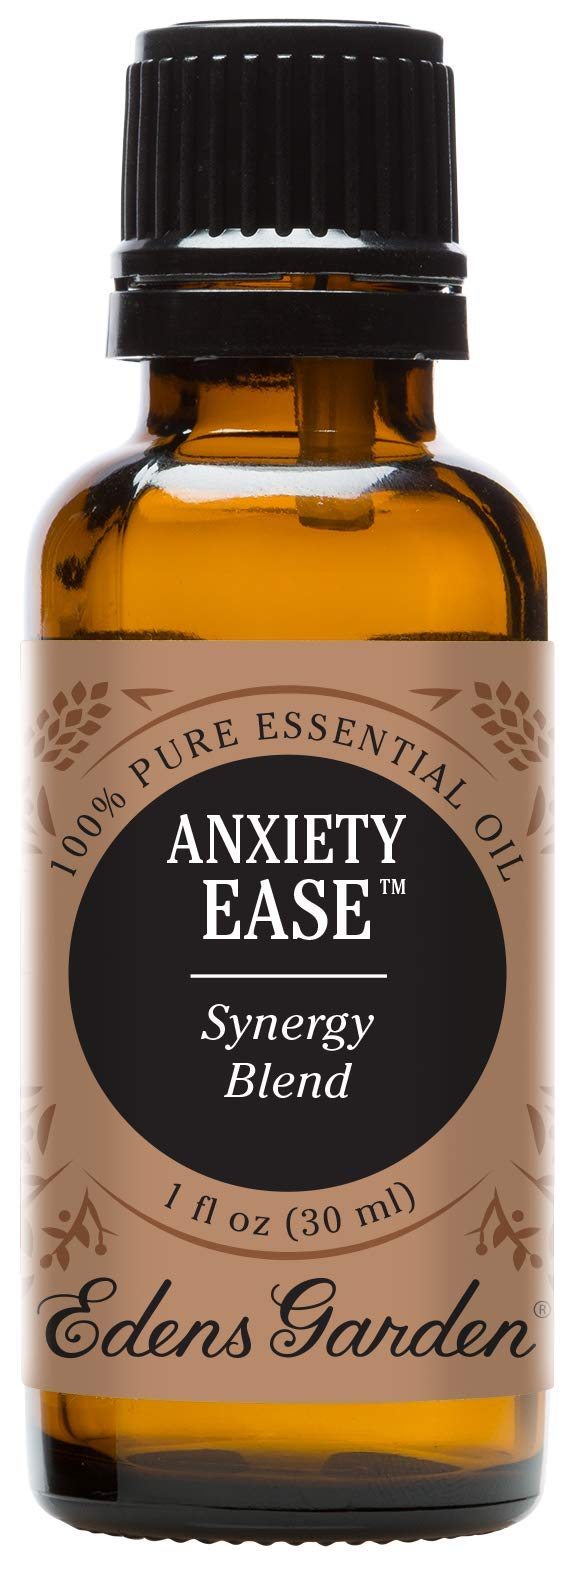 Edens Garden Anxiety Ease Essential Oil Synergy Blend, 100% Pure Therapeutic Grade (Highest Quality Aromatherapy Oils- Anxiety & Stress), 30 ml by Edens Garden